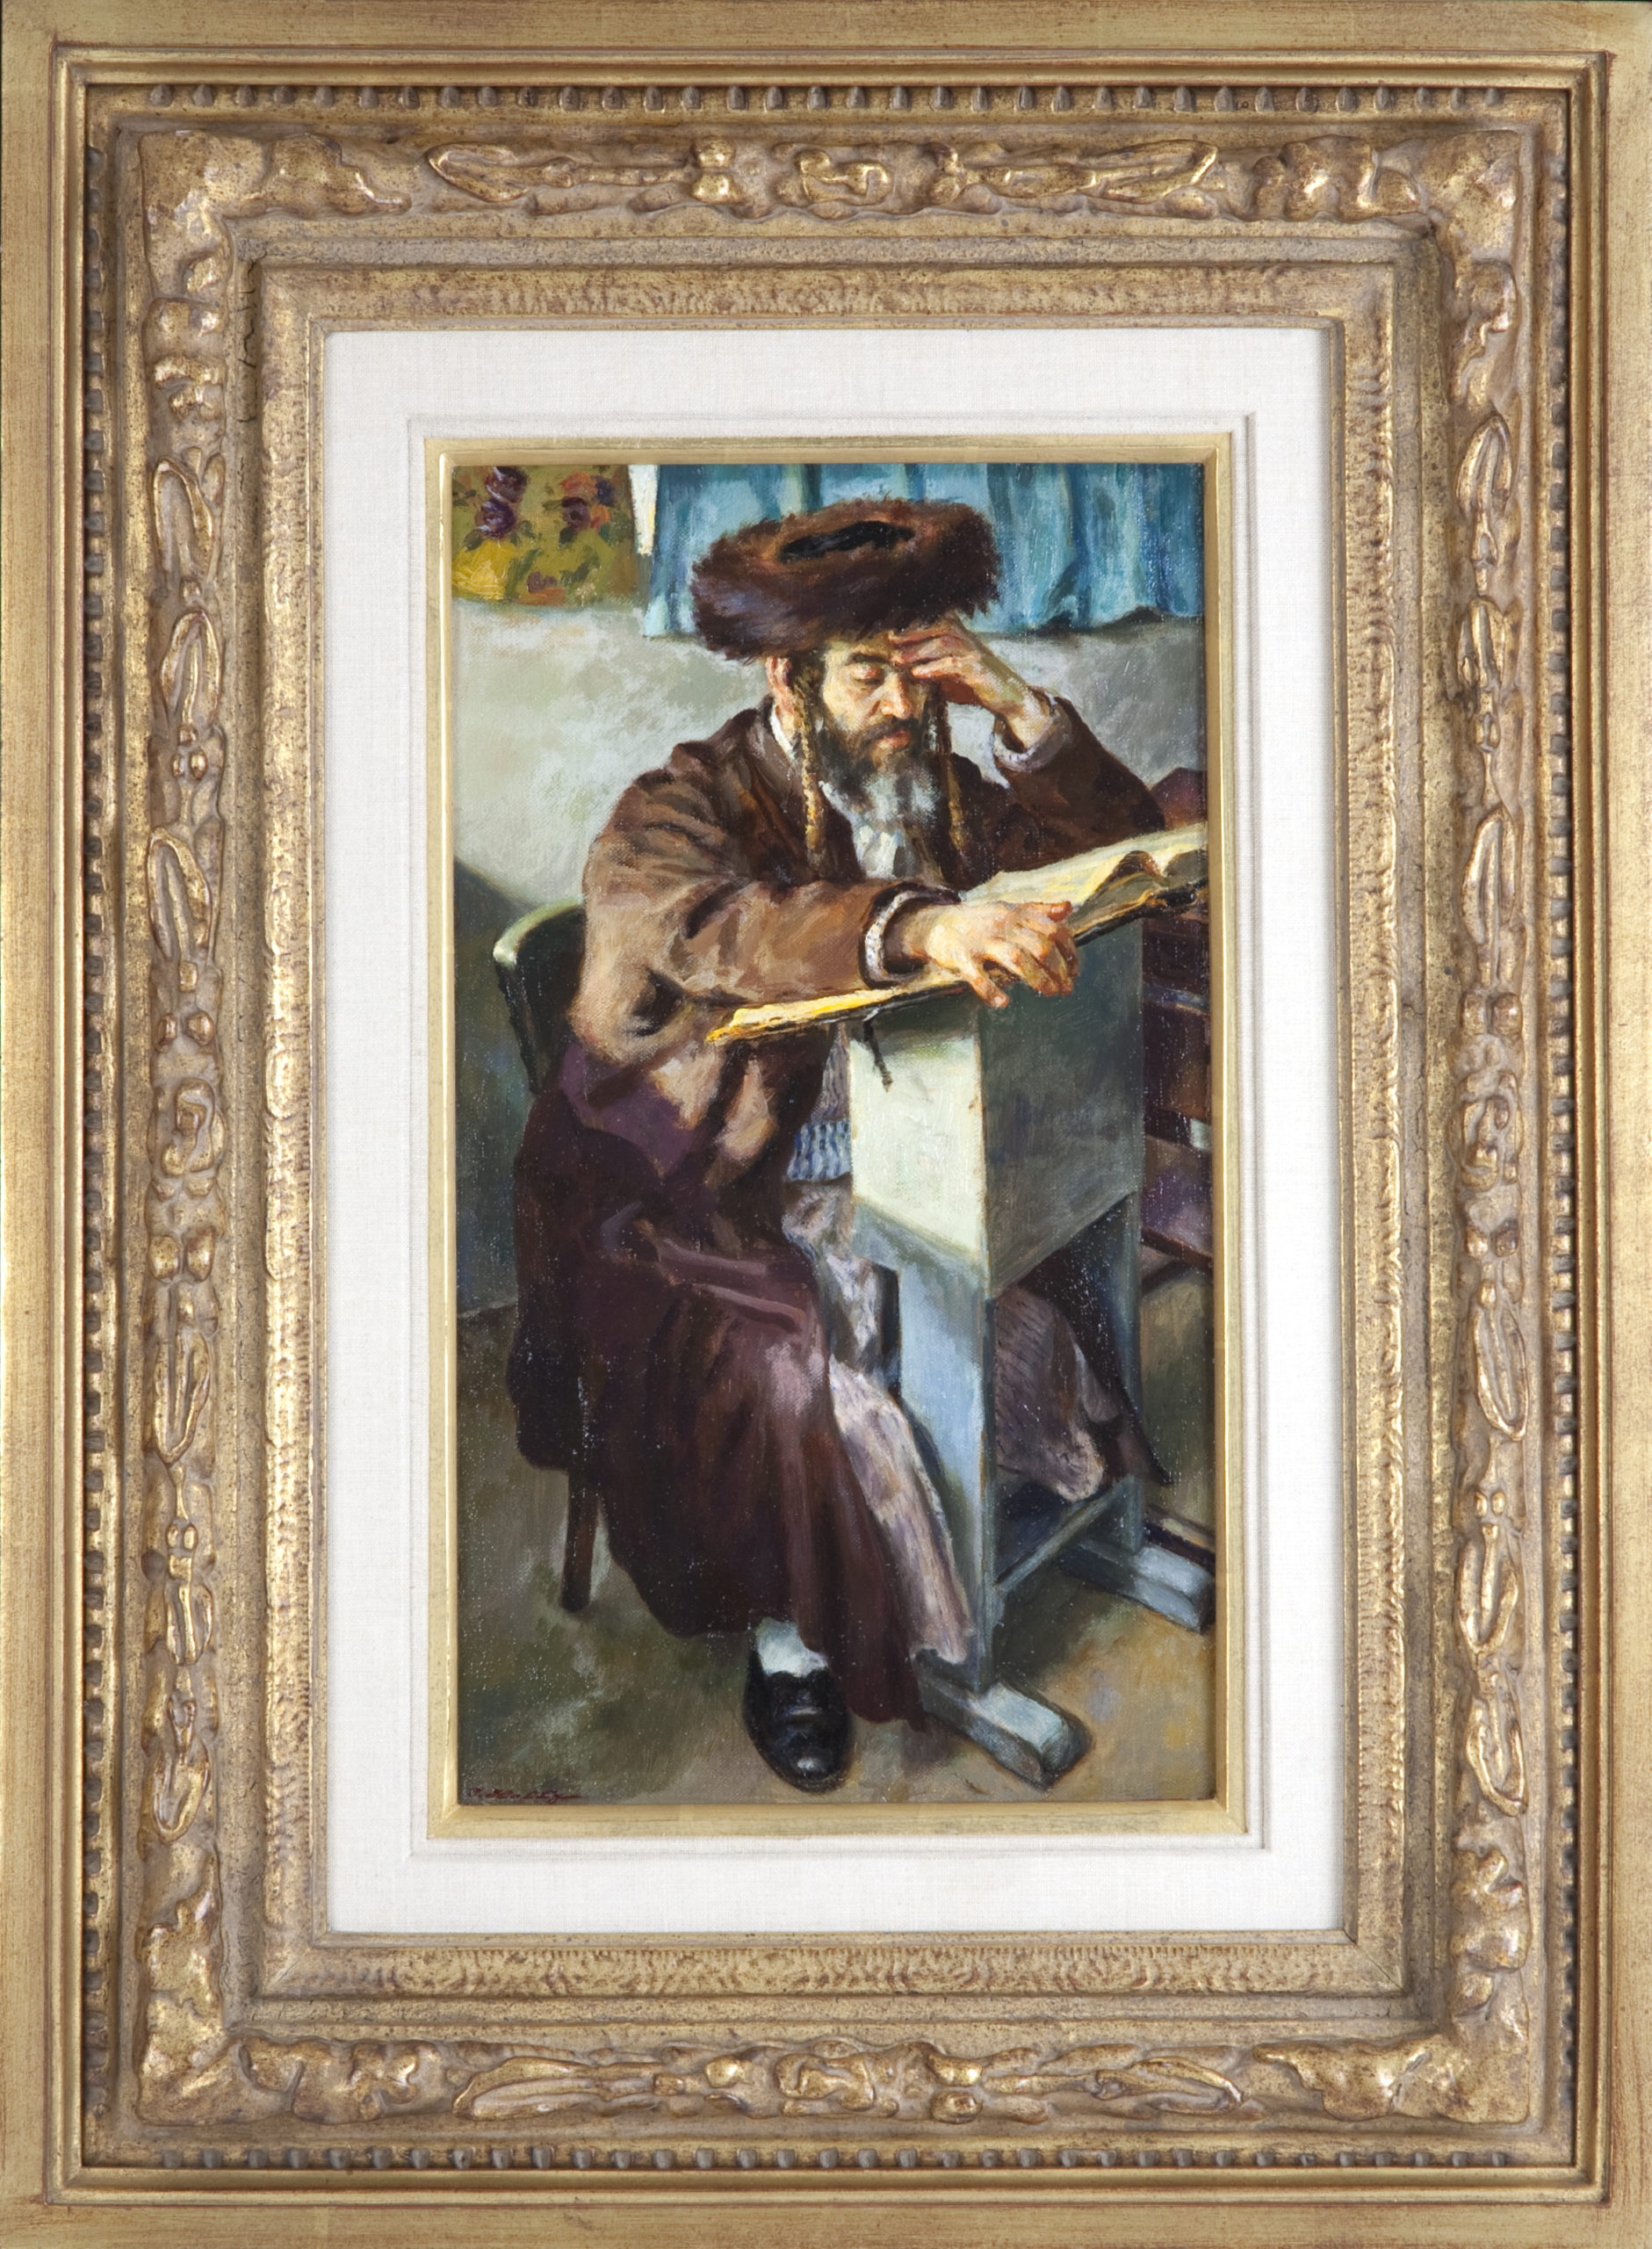 115 Talmud Review 1983 - Oil on Canvas - 10 x 18 - Frame: 21.5 x 29.5 x 2.5